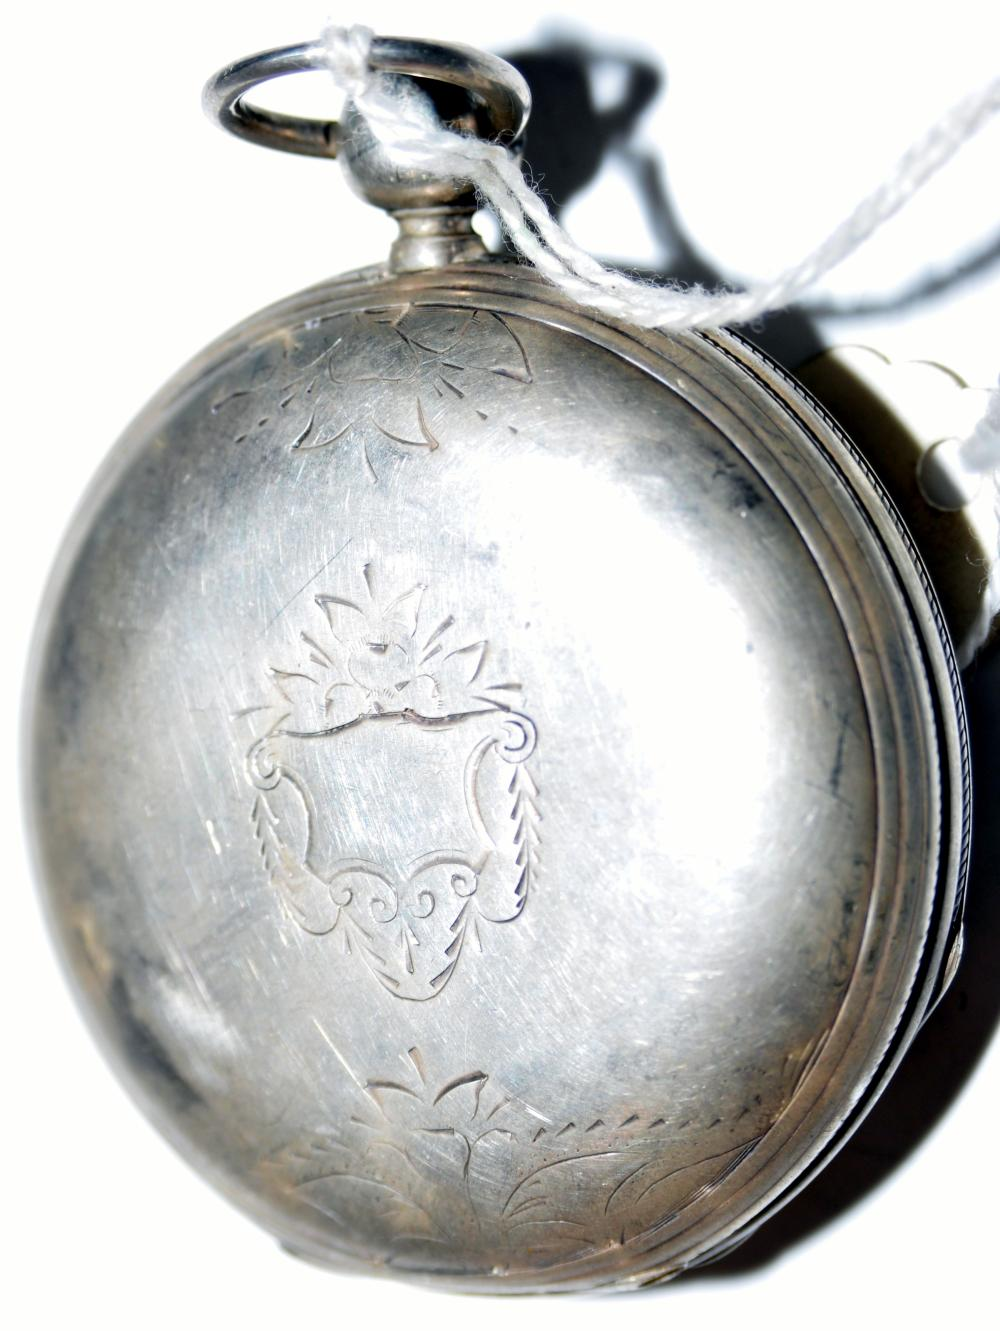 Lot 152: Pocketwatch coin silver hunter #18 elgin